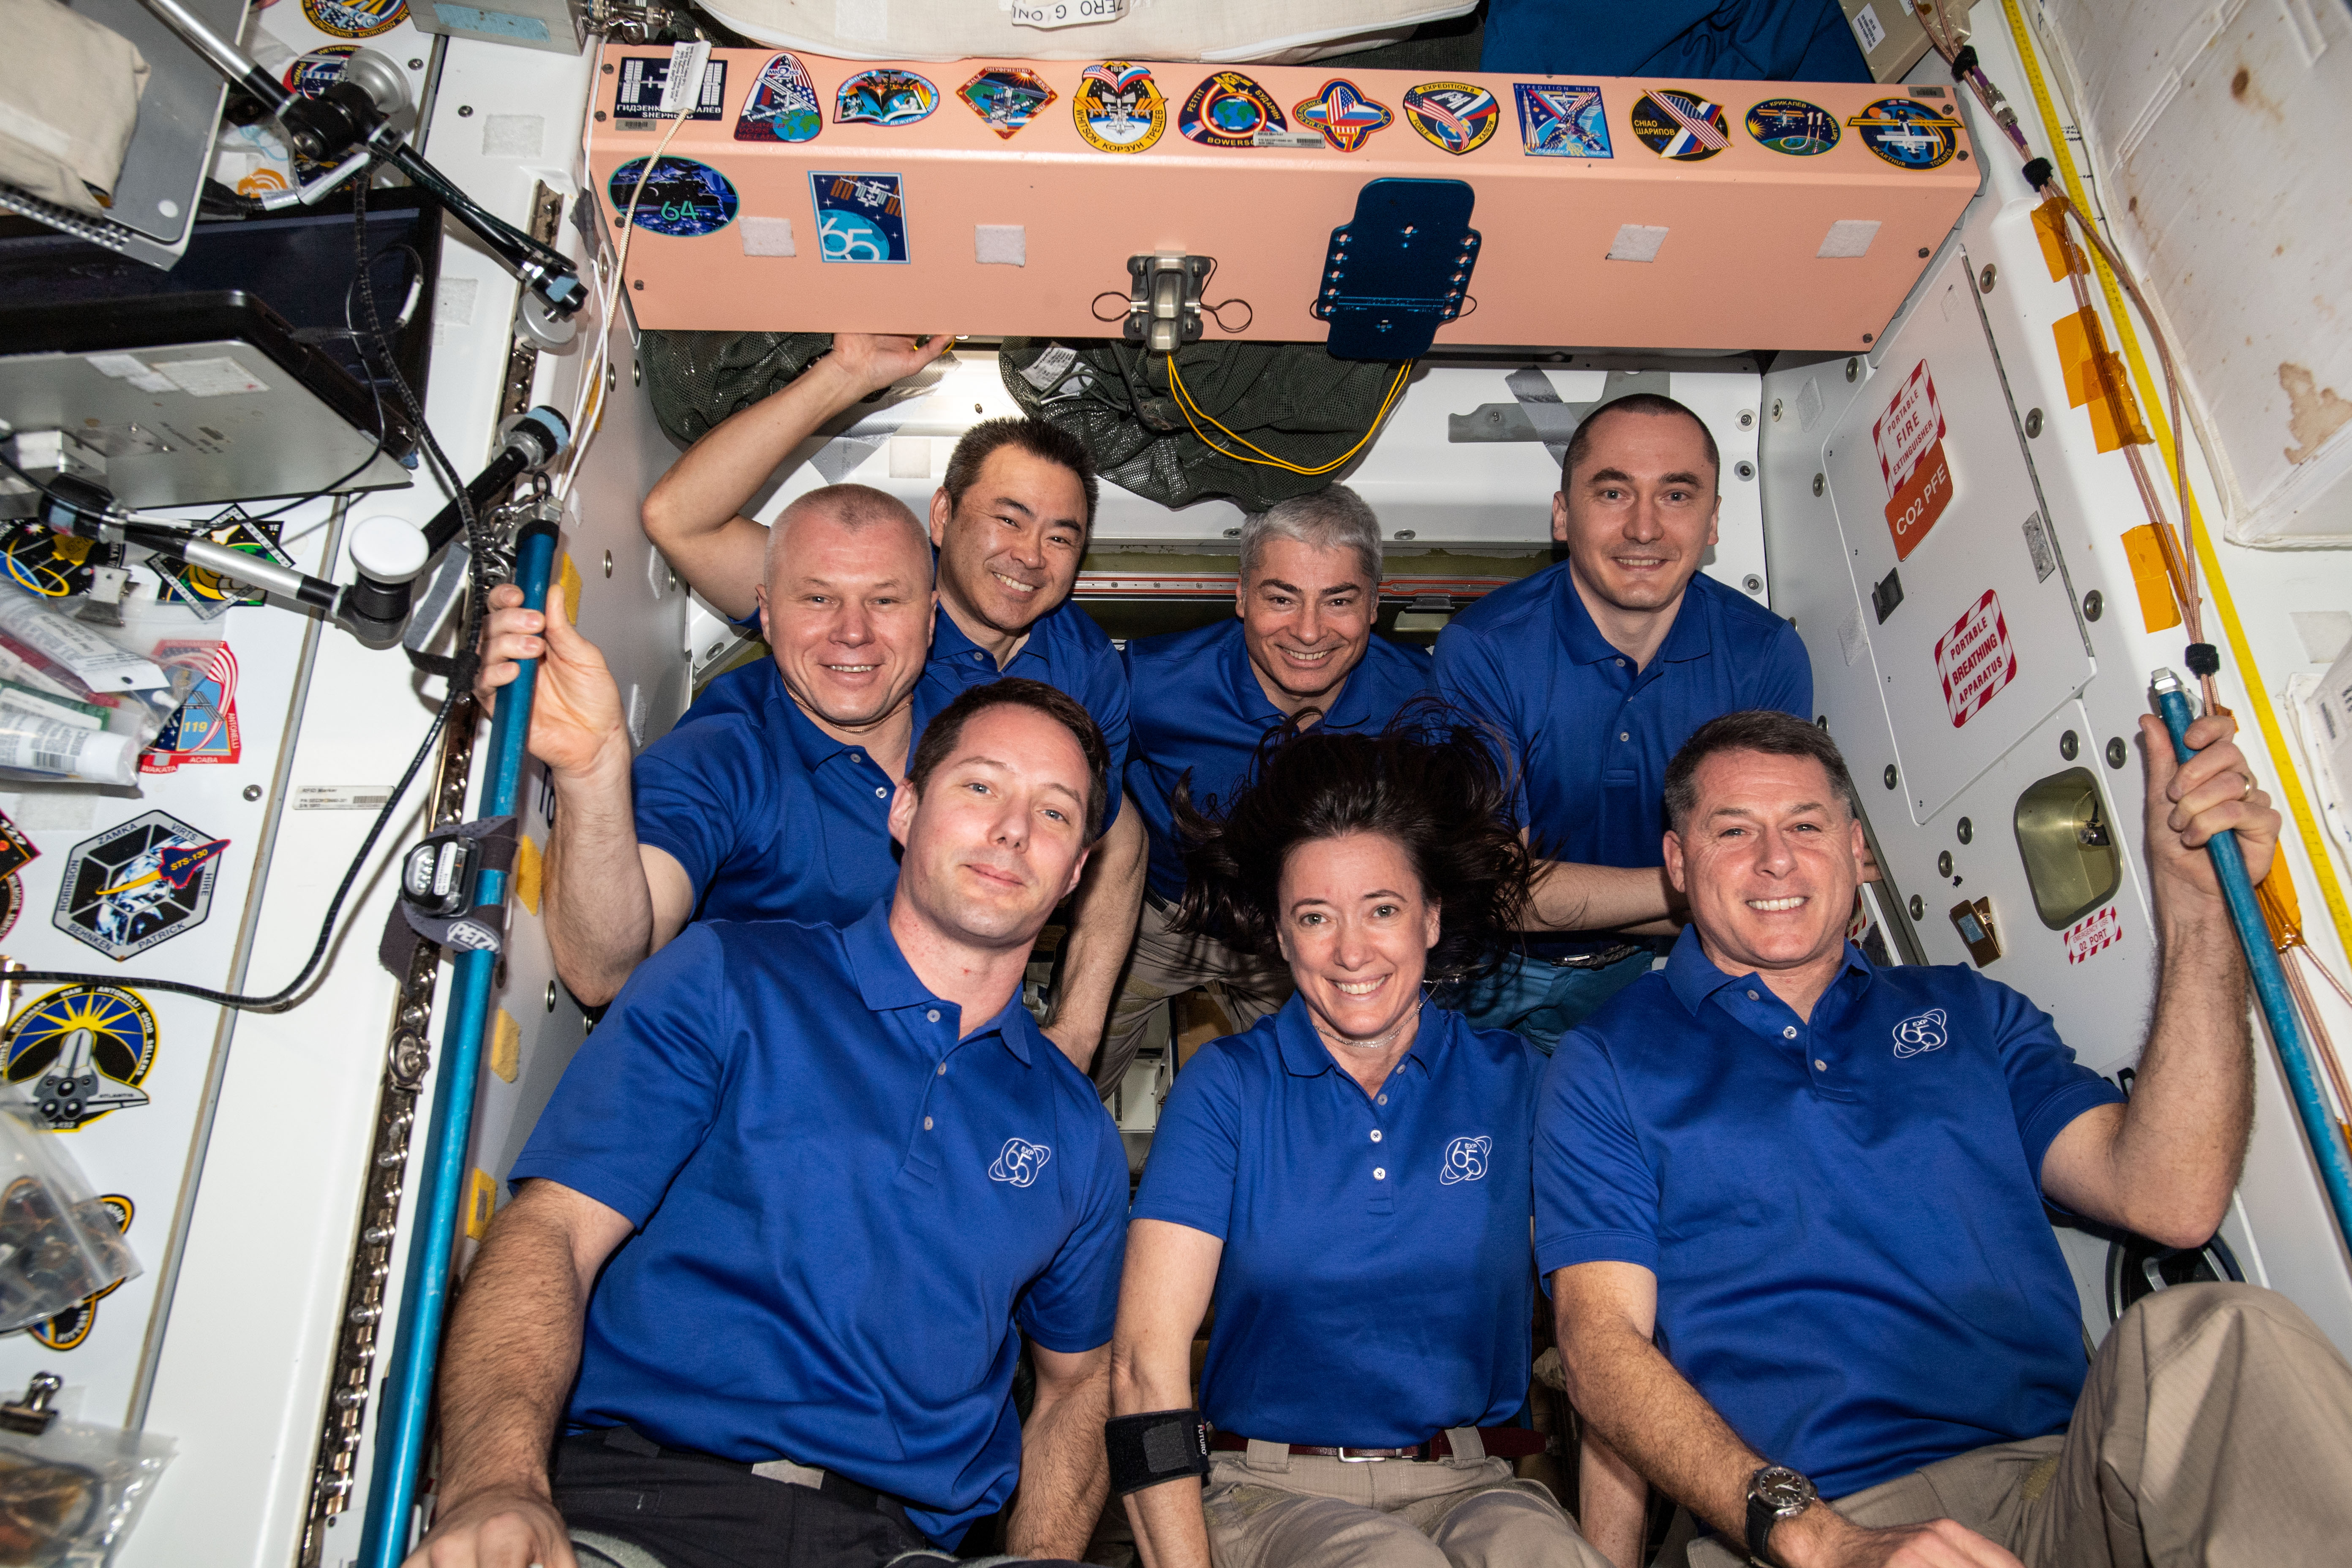 Smile! You're on the International Space Station